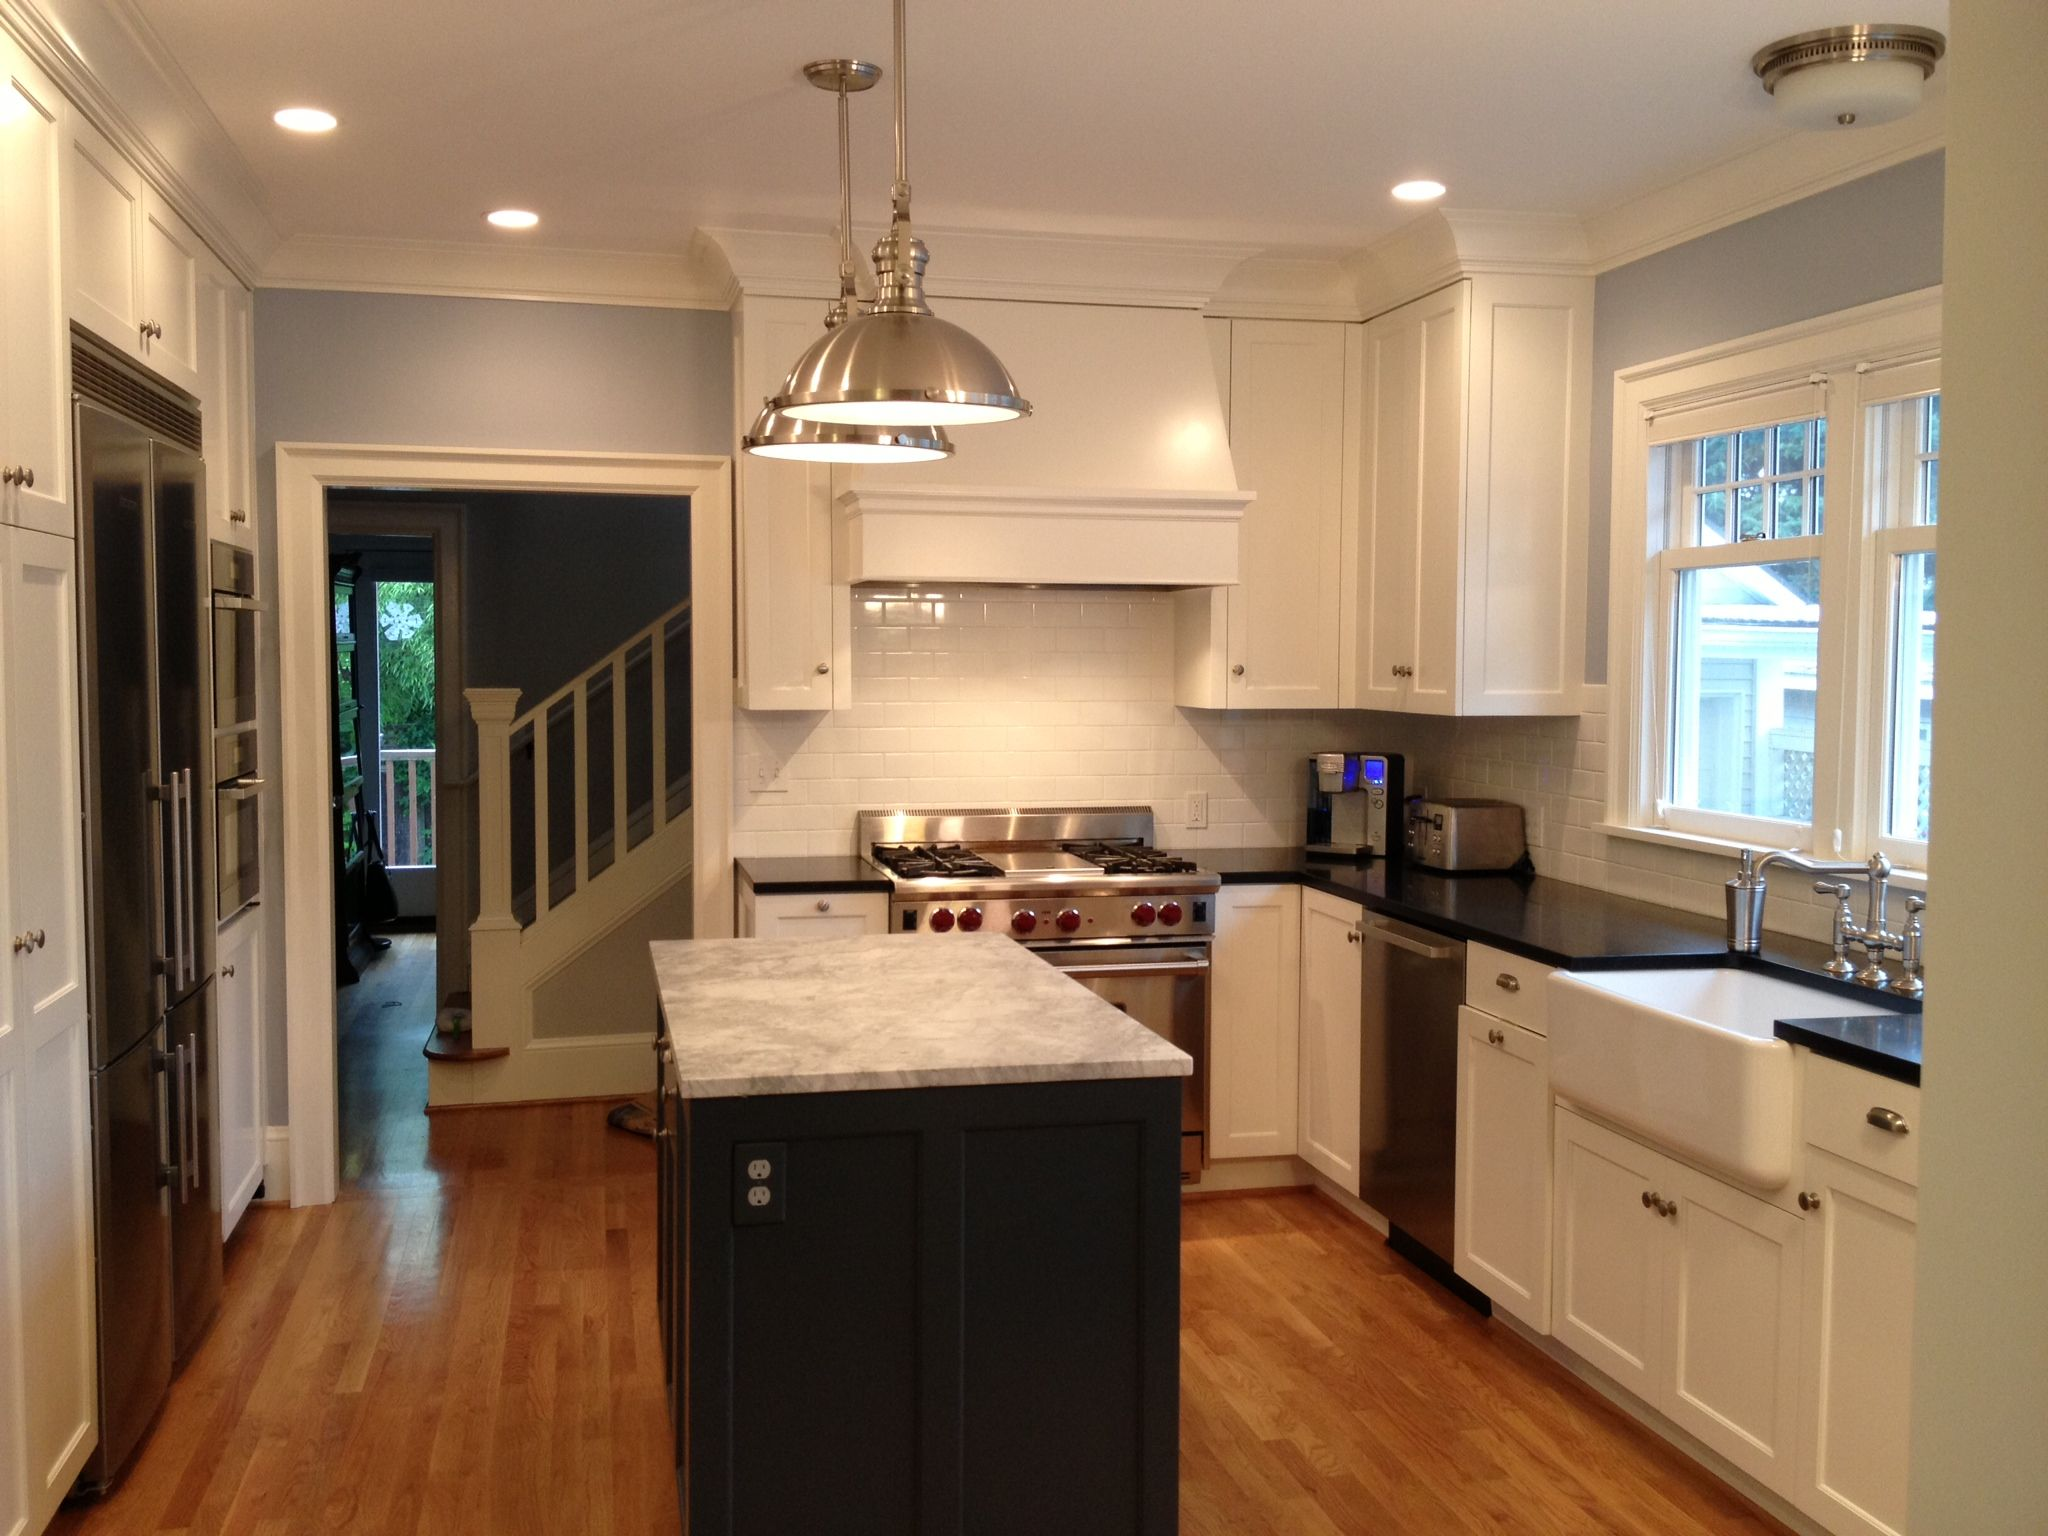 full kitchen view in 1920 s home white custom cabinets moonlight